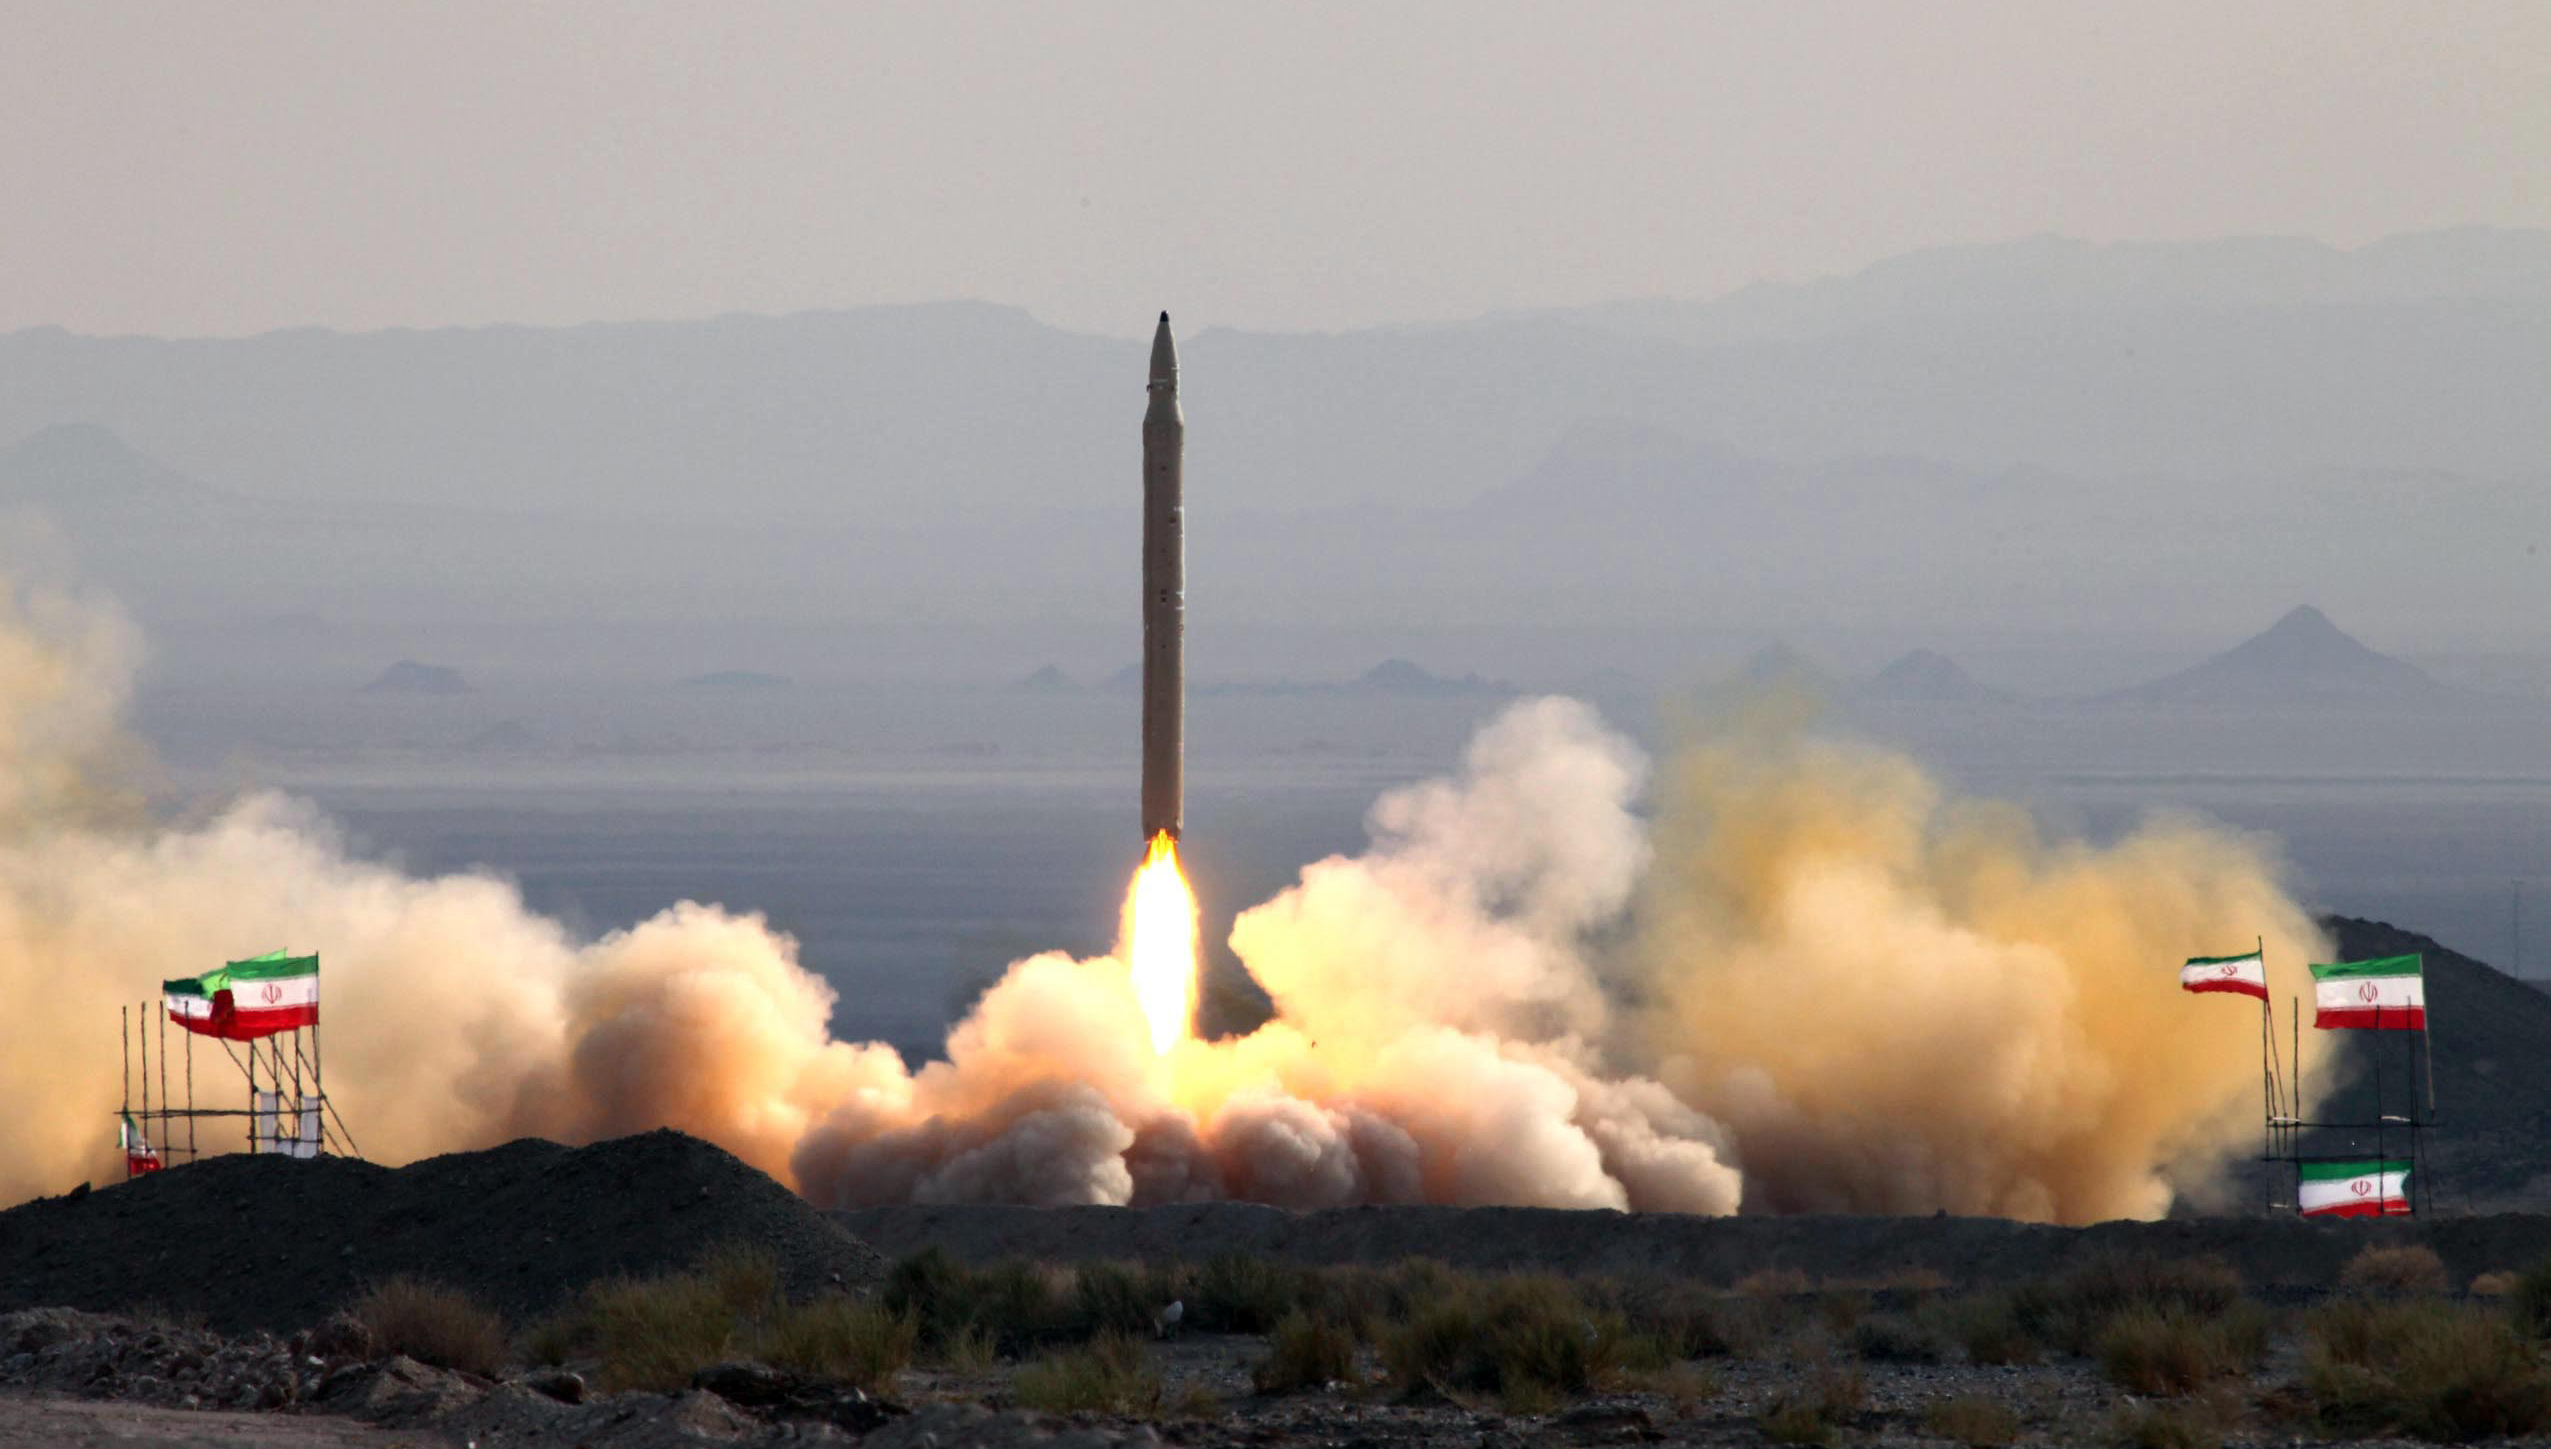 Limit Iran's missiles? Sure, but first come up with a plan